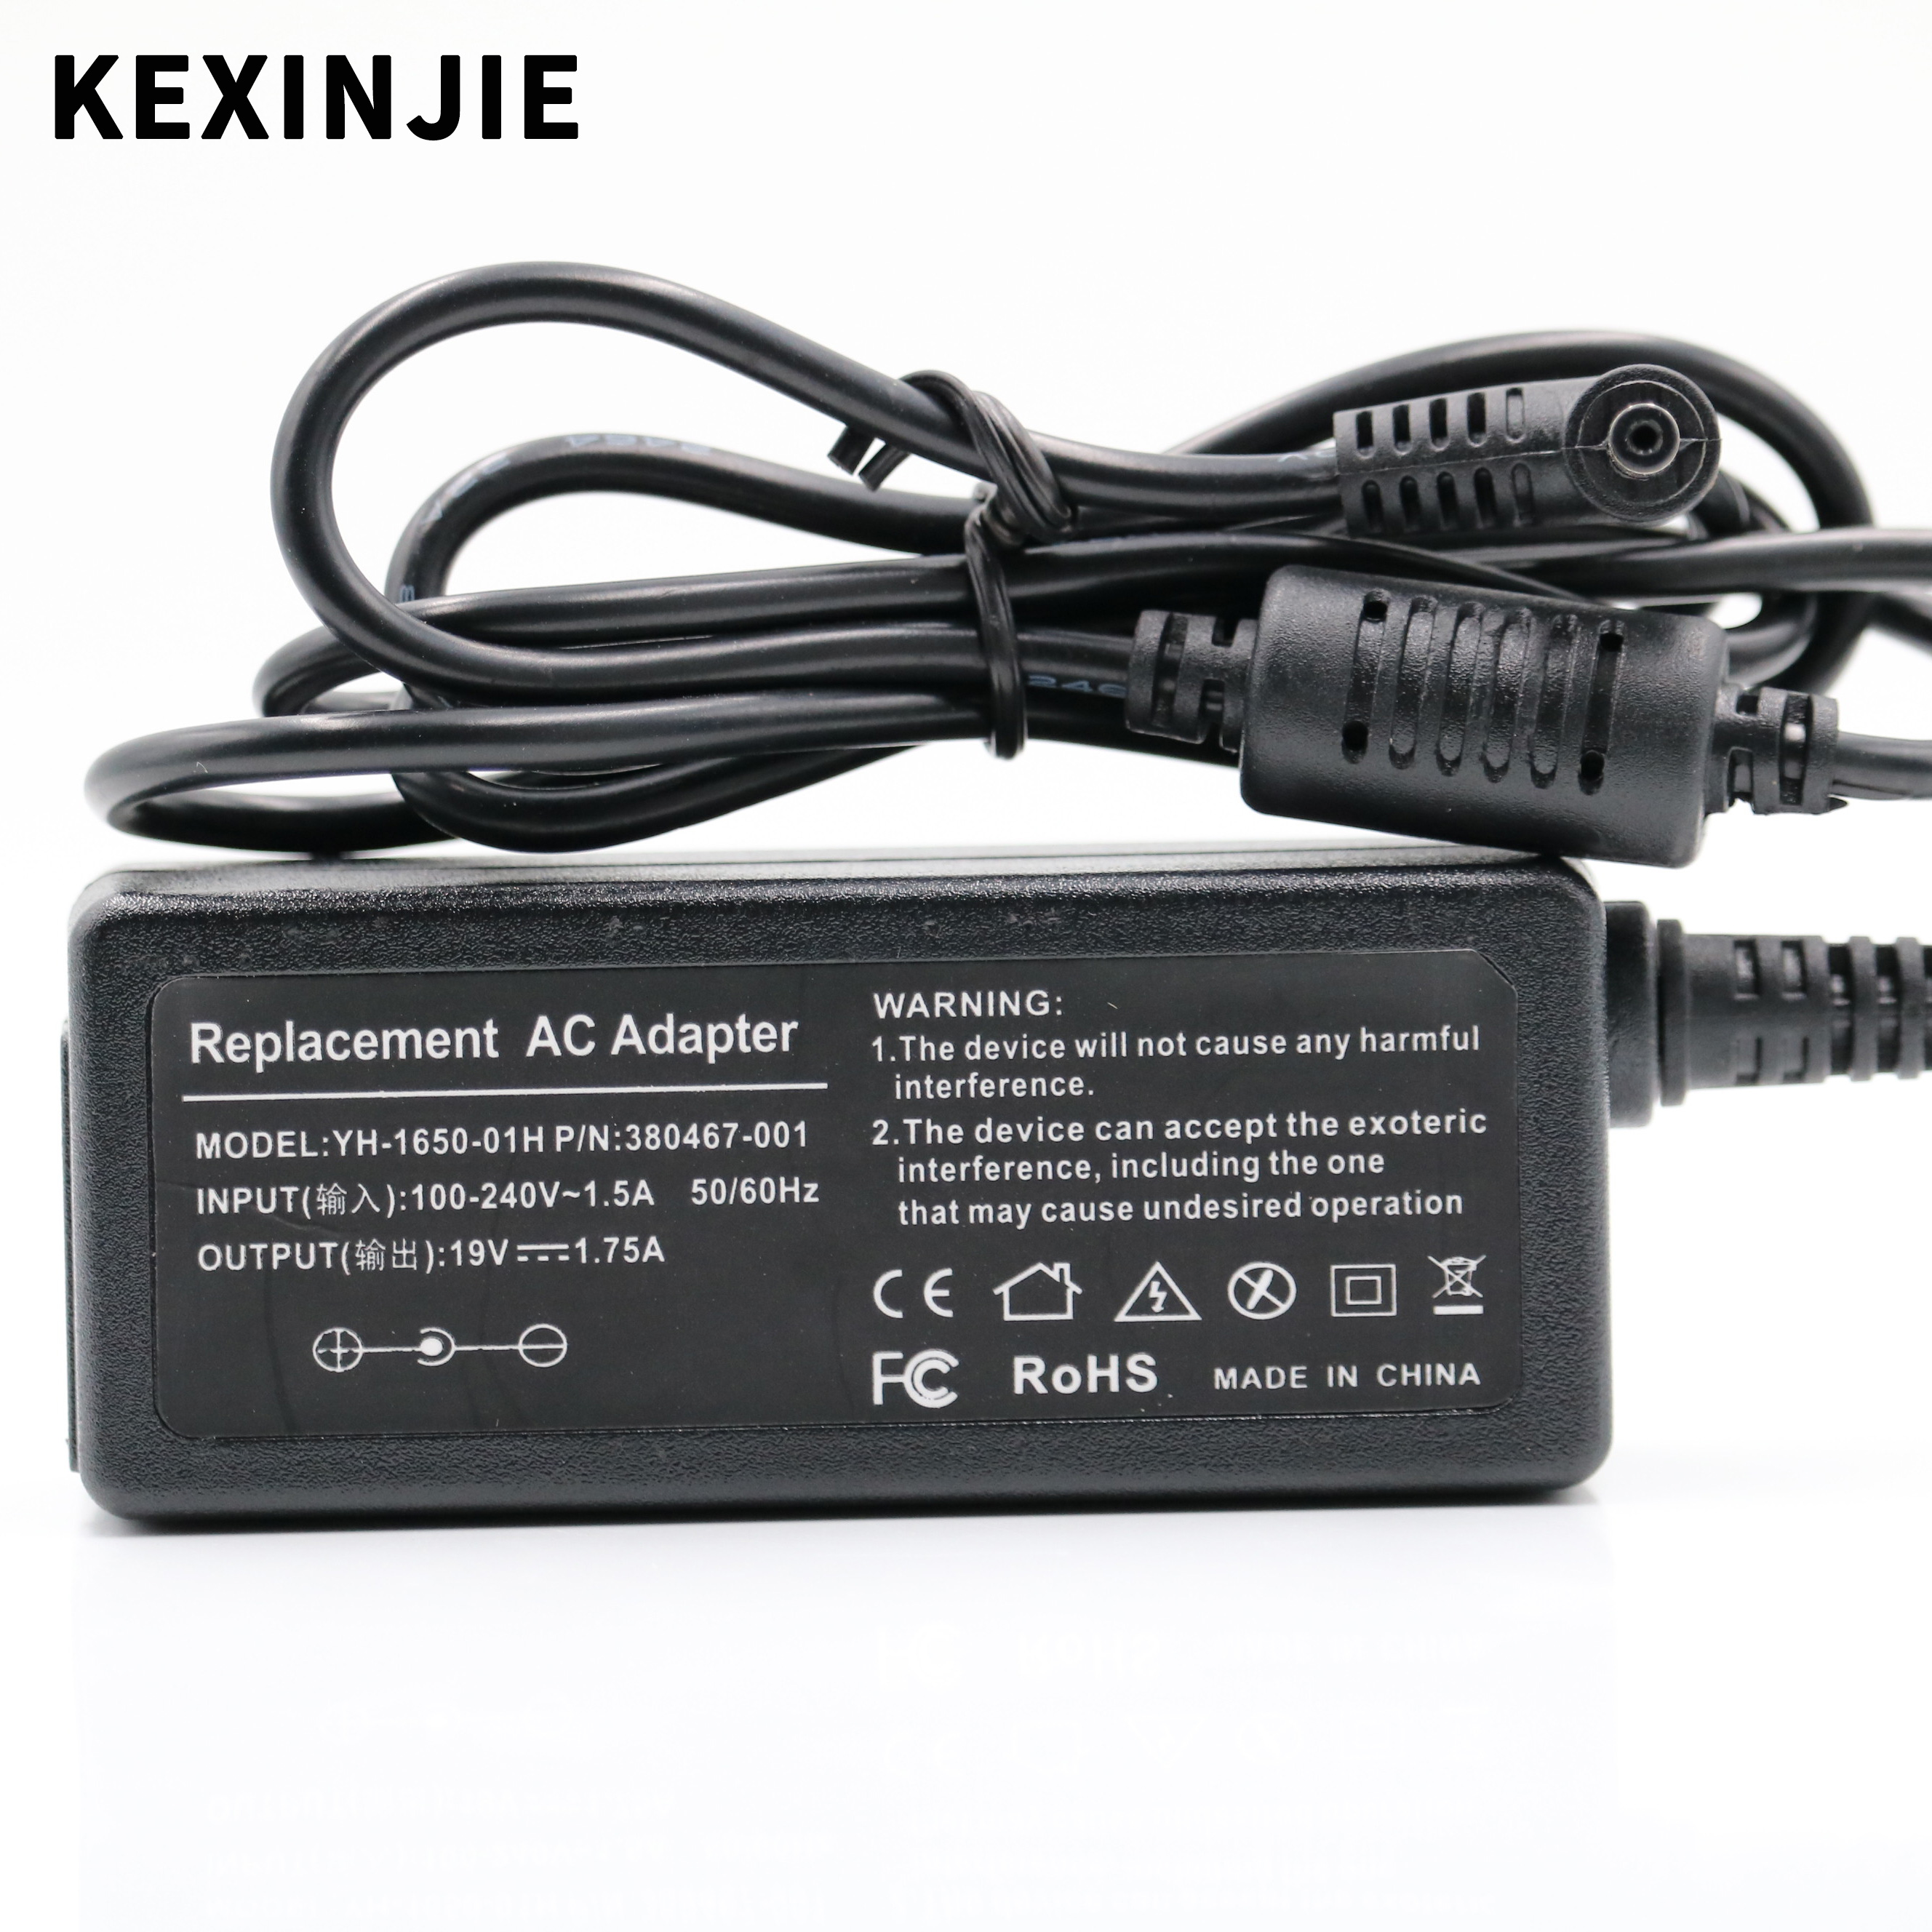 19V 1.75A AC Adapter For ASUS VivoBook F201E F553M X202E Q200E S200 S220 S200E Tablet Ultrabook AC Adapter Charger 4.0*1.35MM